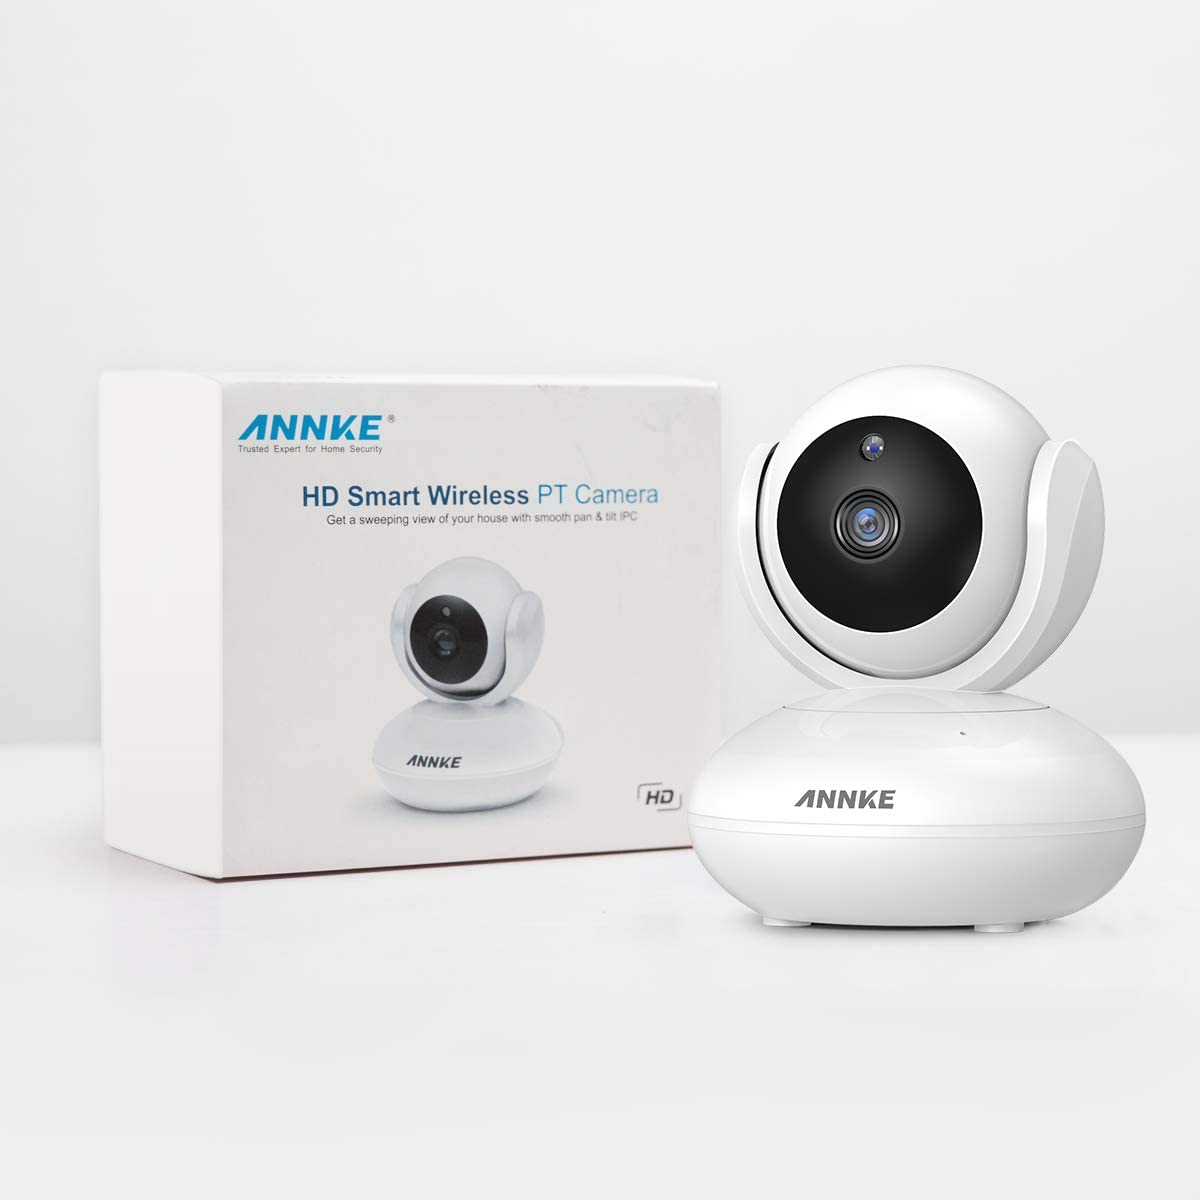 ANNKE 1080P Home Security Camera, Smart Wireless WiFi Pan Tilt IP Camera with Night Vision, App Alarm Push, Two-Way Audio, Supports 64 GB TF Card, Cloud Storage, Works with Alexa Echo Show White